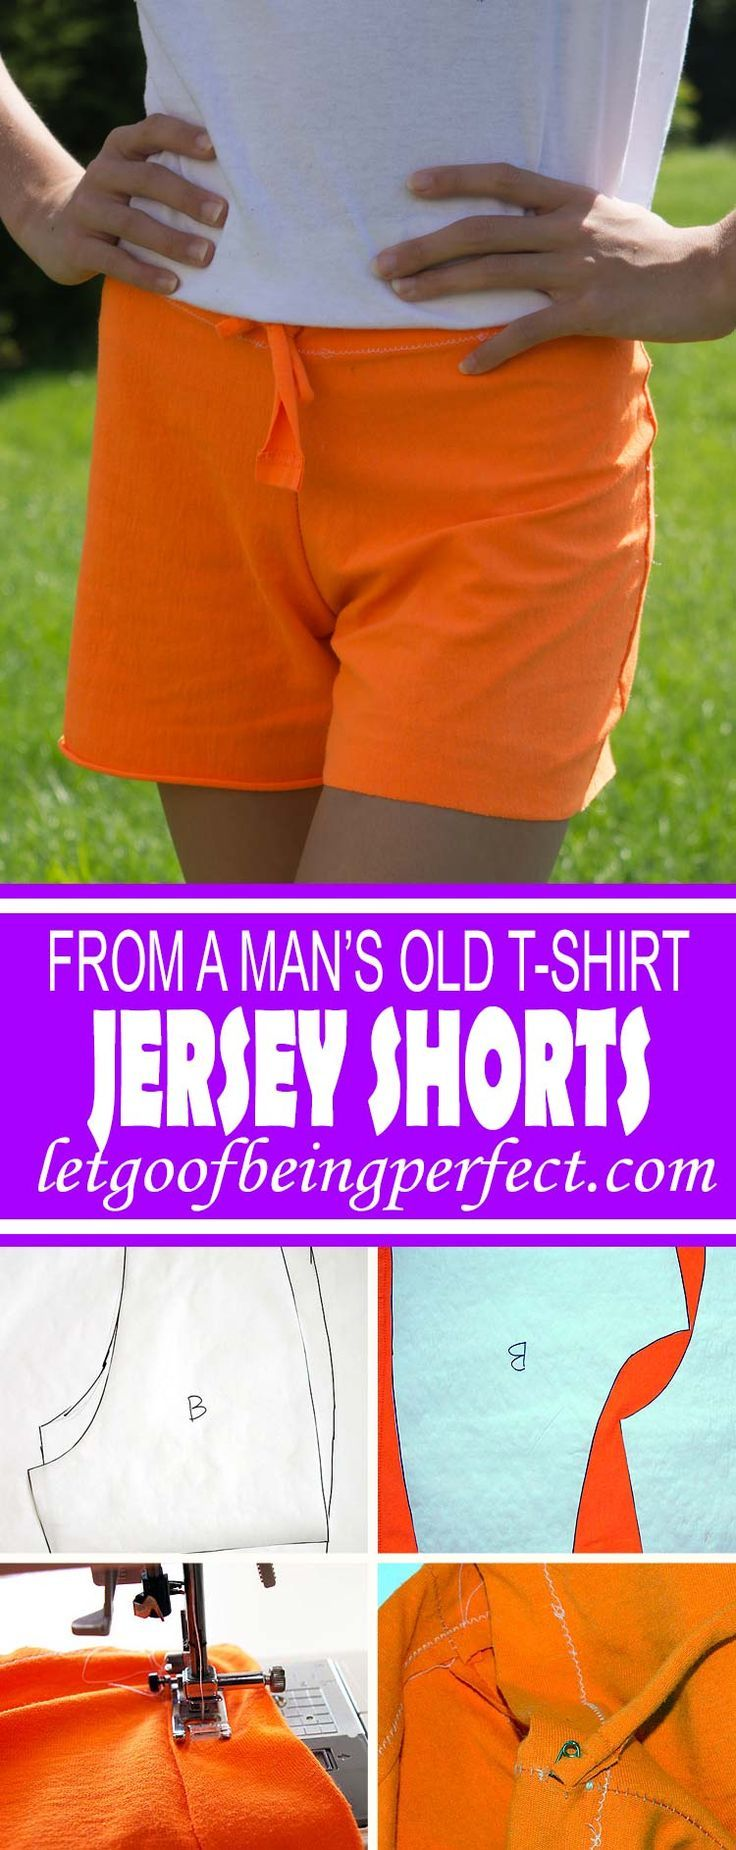 DIY Refashion Jersey Shorts from a Man's T-Shirt -   17 DIY Clothes No Sewing shorts ideas